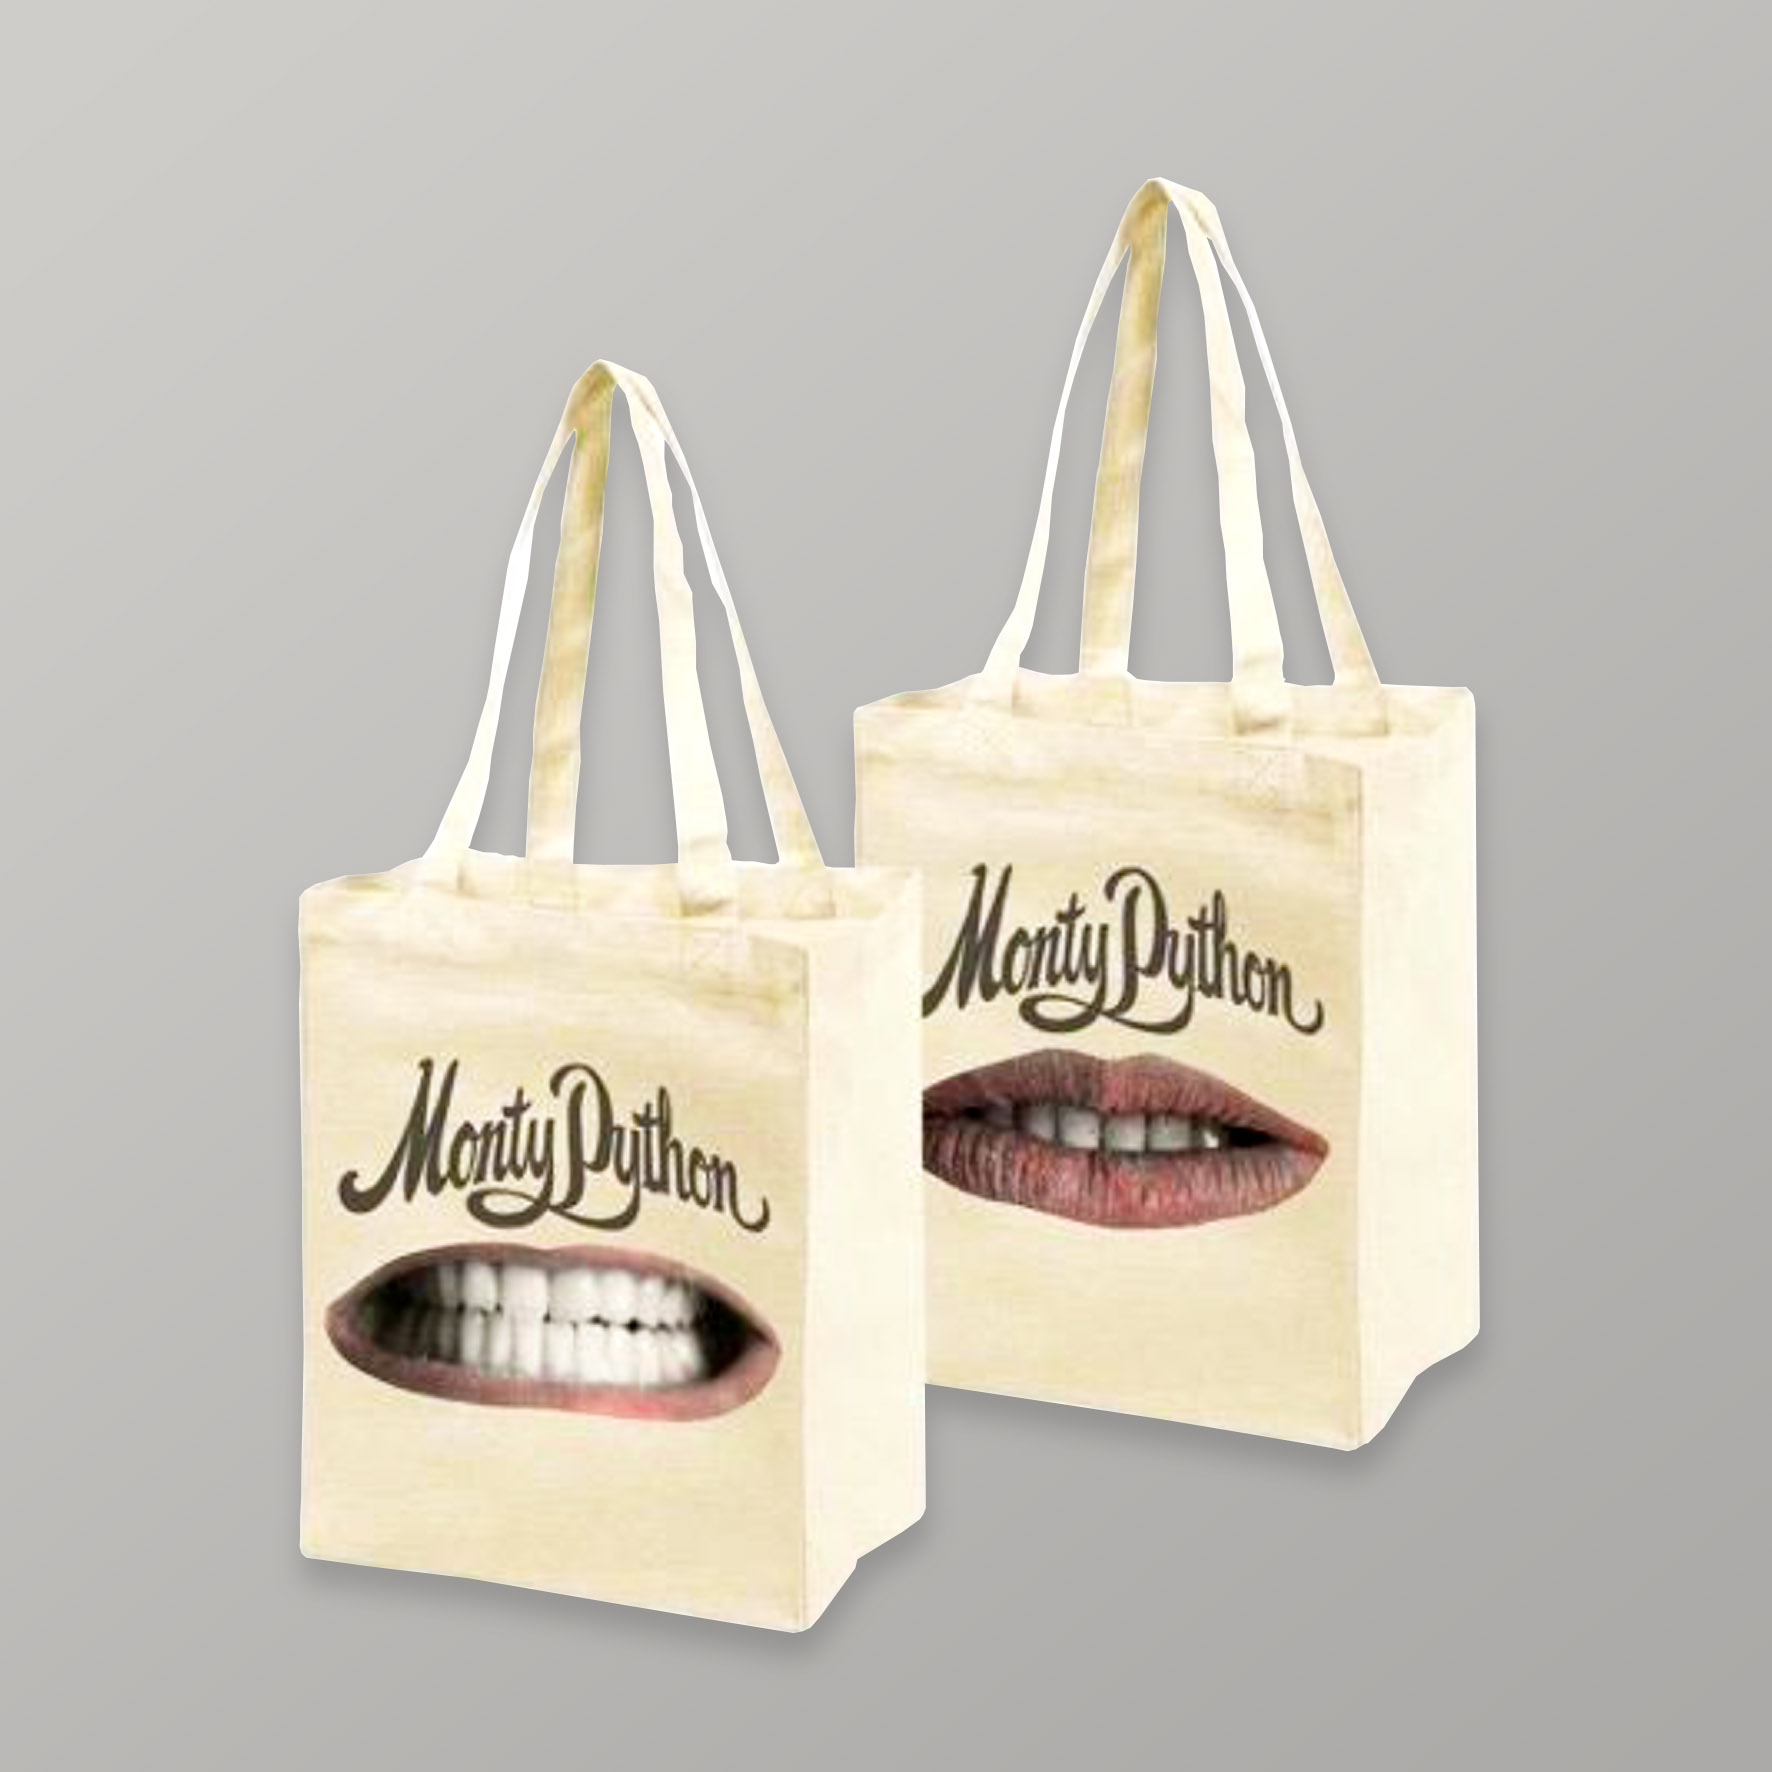 Buy Monty Python Tote Bag (Mouth)